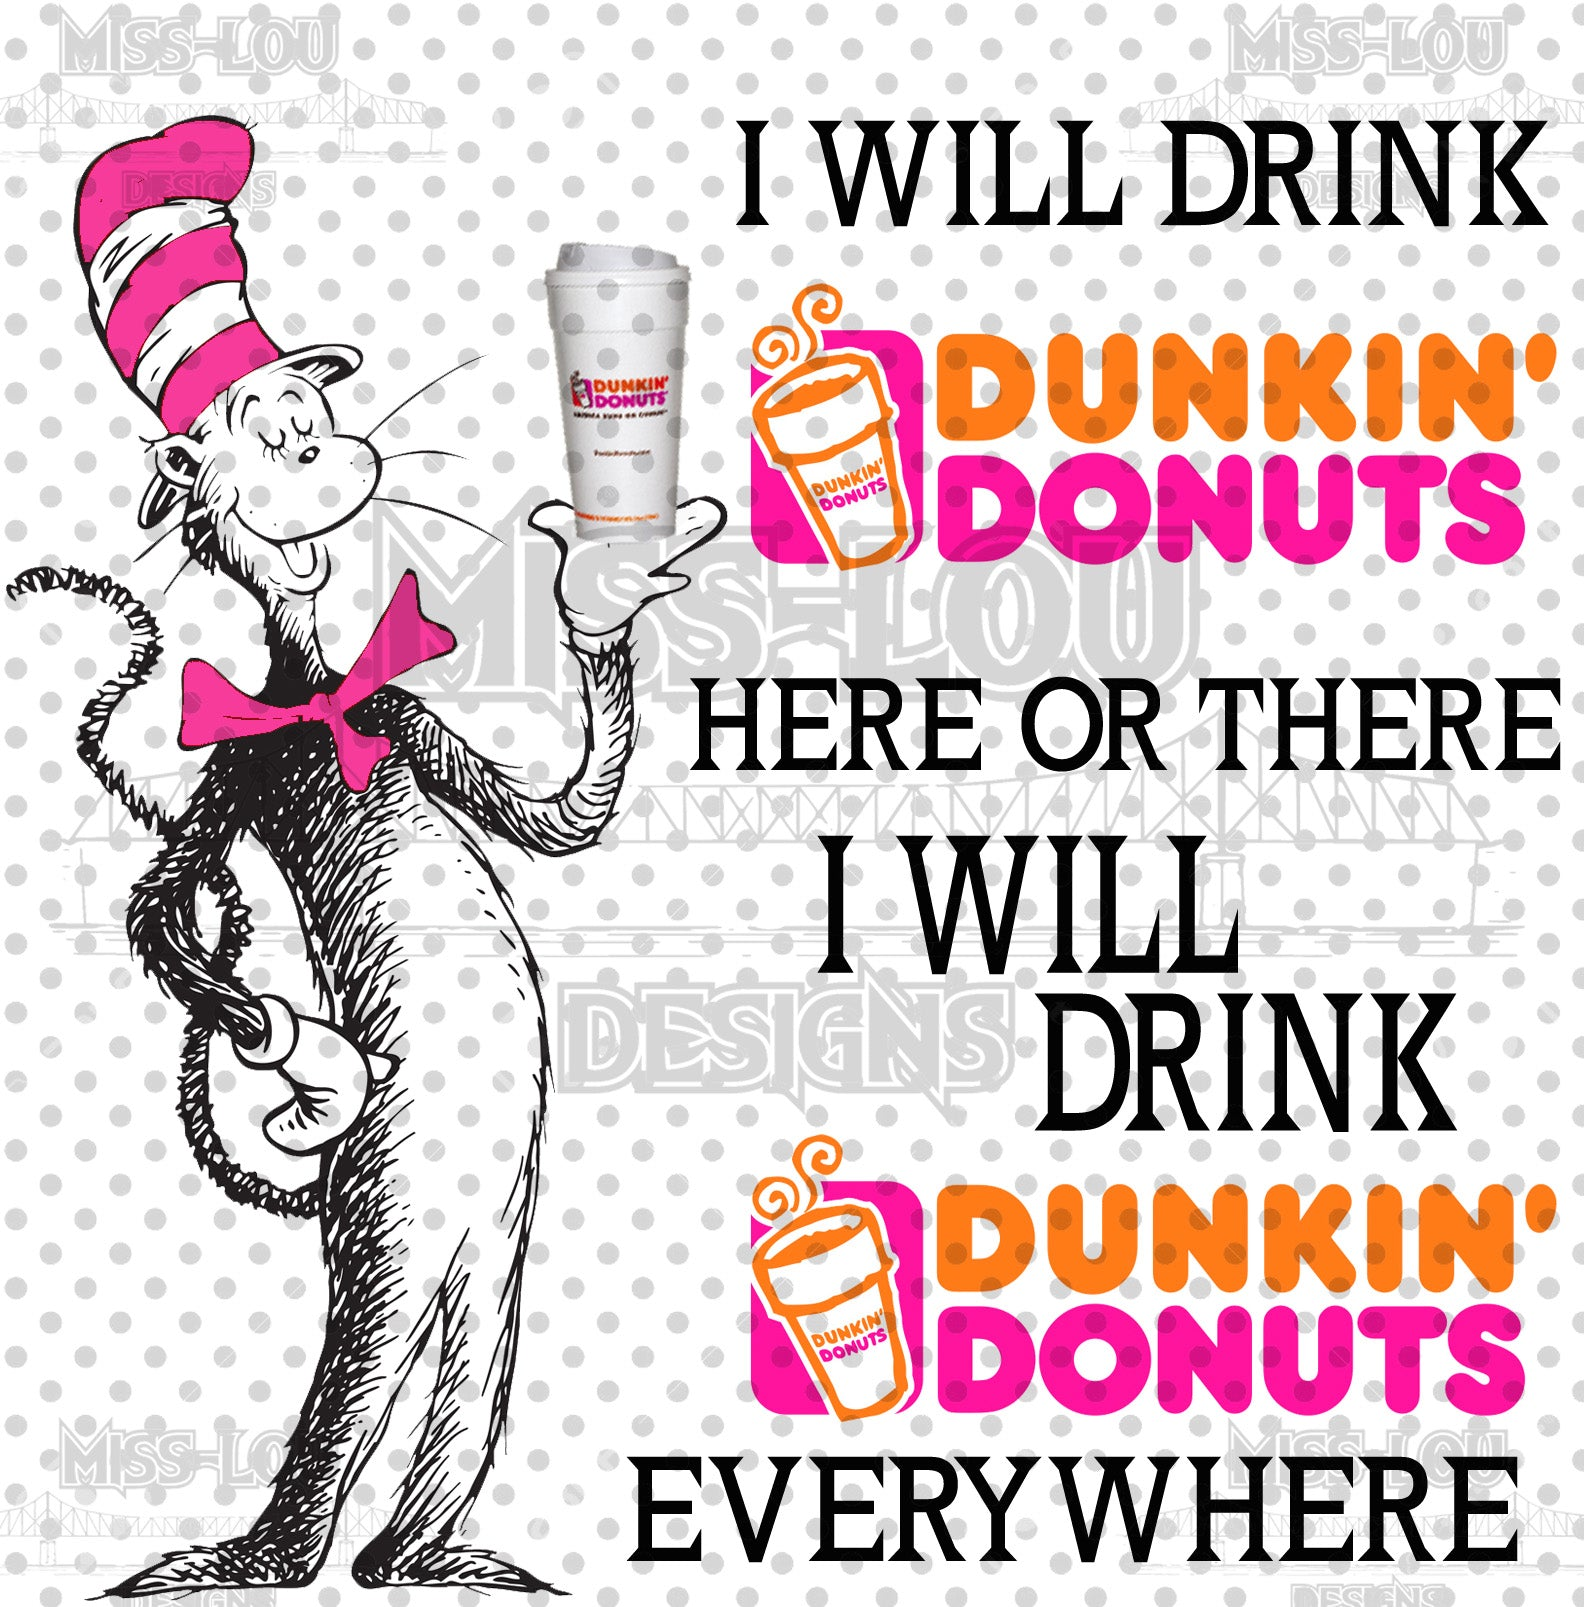 Cat In The Hat Dunkin Donuts Waterslide